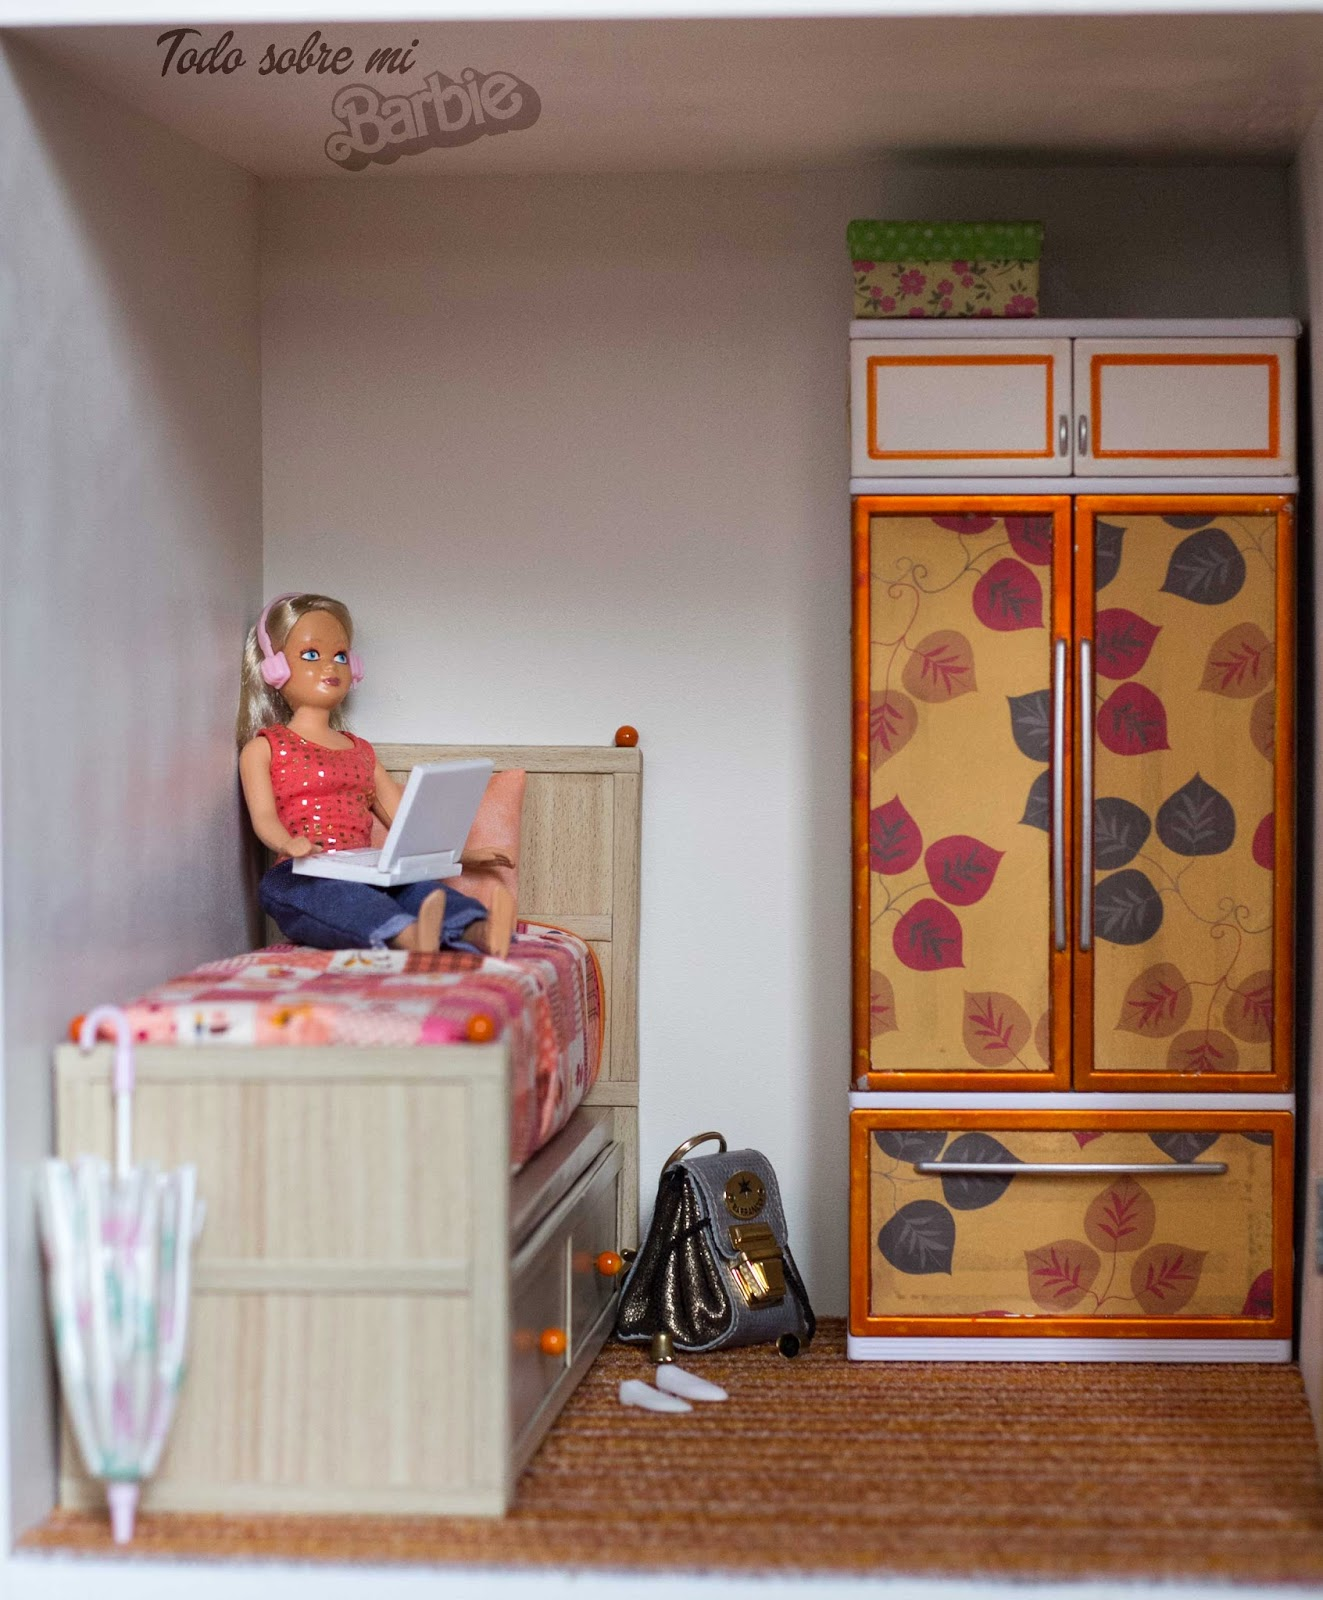 Dormitorio Barbie Todo Sobre Mi Barbie Dormitorio De Skipper